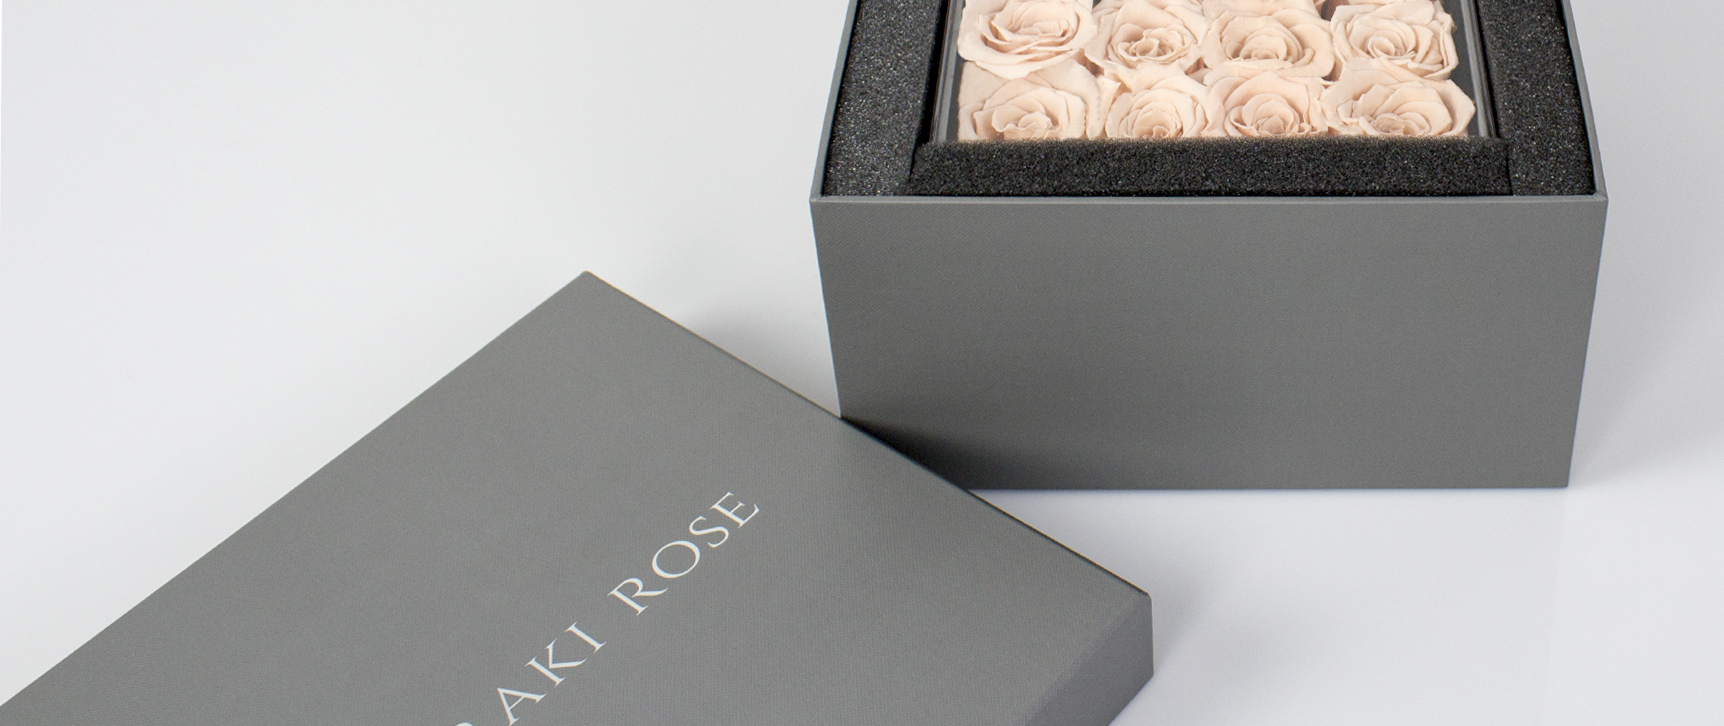 Not Your Ordinary Box - Our premium preserved roses deserve to be packaged in the best way, not just in any ordinary box. For a year, our team of experts paid attention to every detail to create a custom designed box. From the inner velvet lining, to the thickness and texture of the box, we made sure your roses sat perfectly in your package.